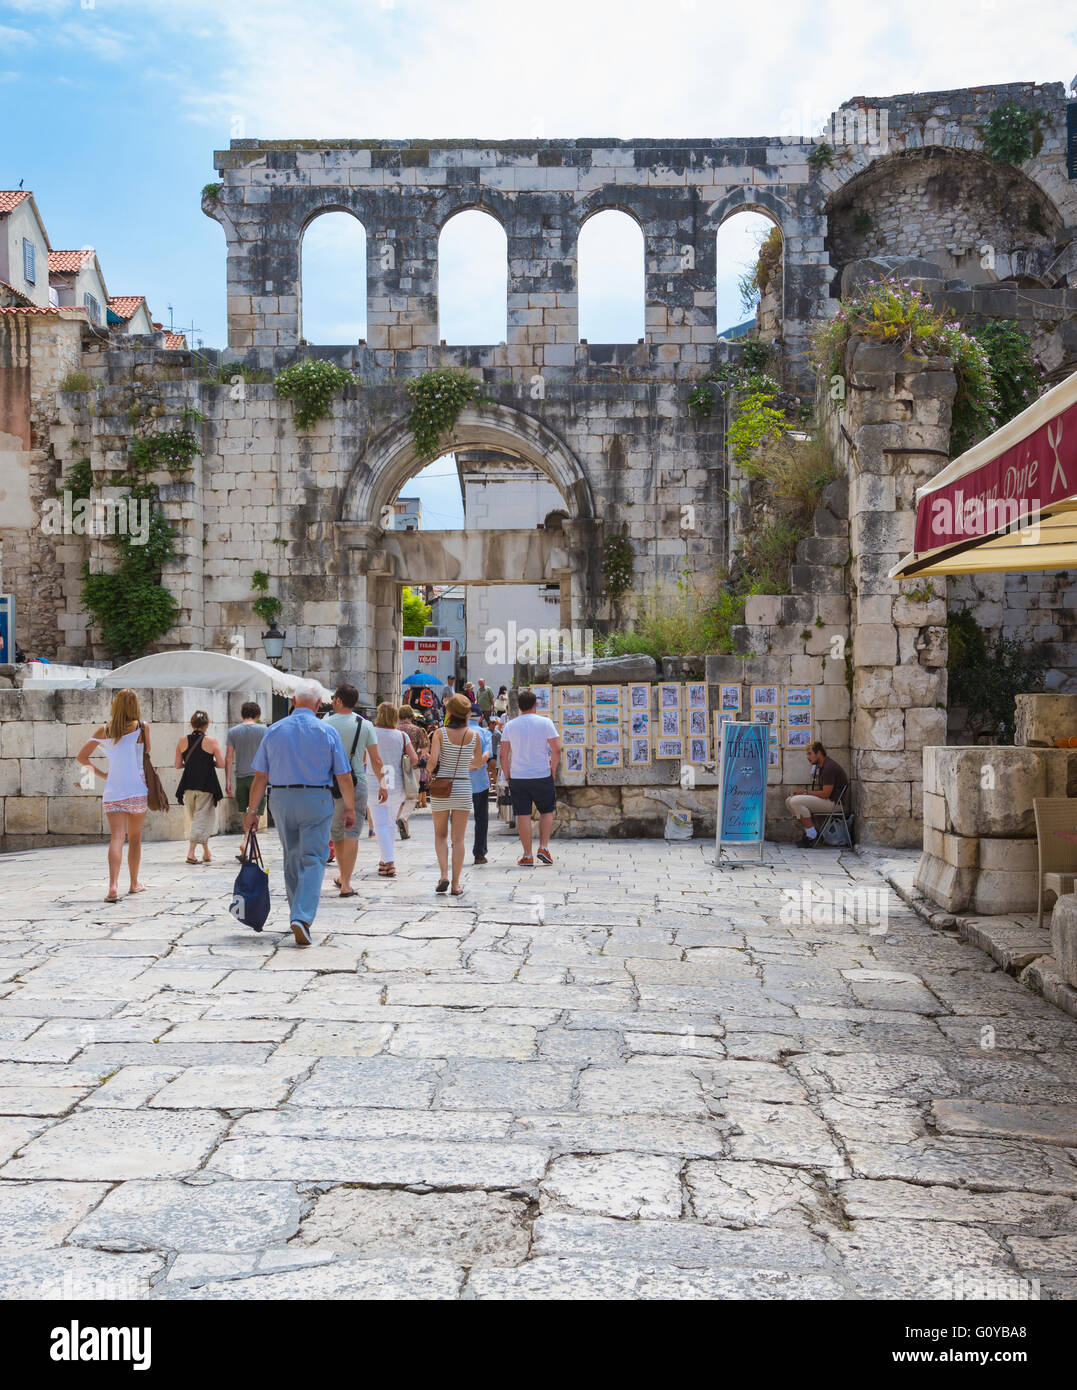 Split, Dalmatian Coast, Croatia.  The Eastern Gate to the Palace of Diocletian, also known as the Silver Gate. - Stock Image